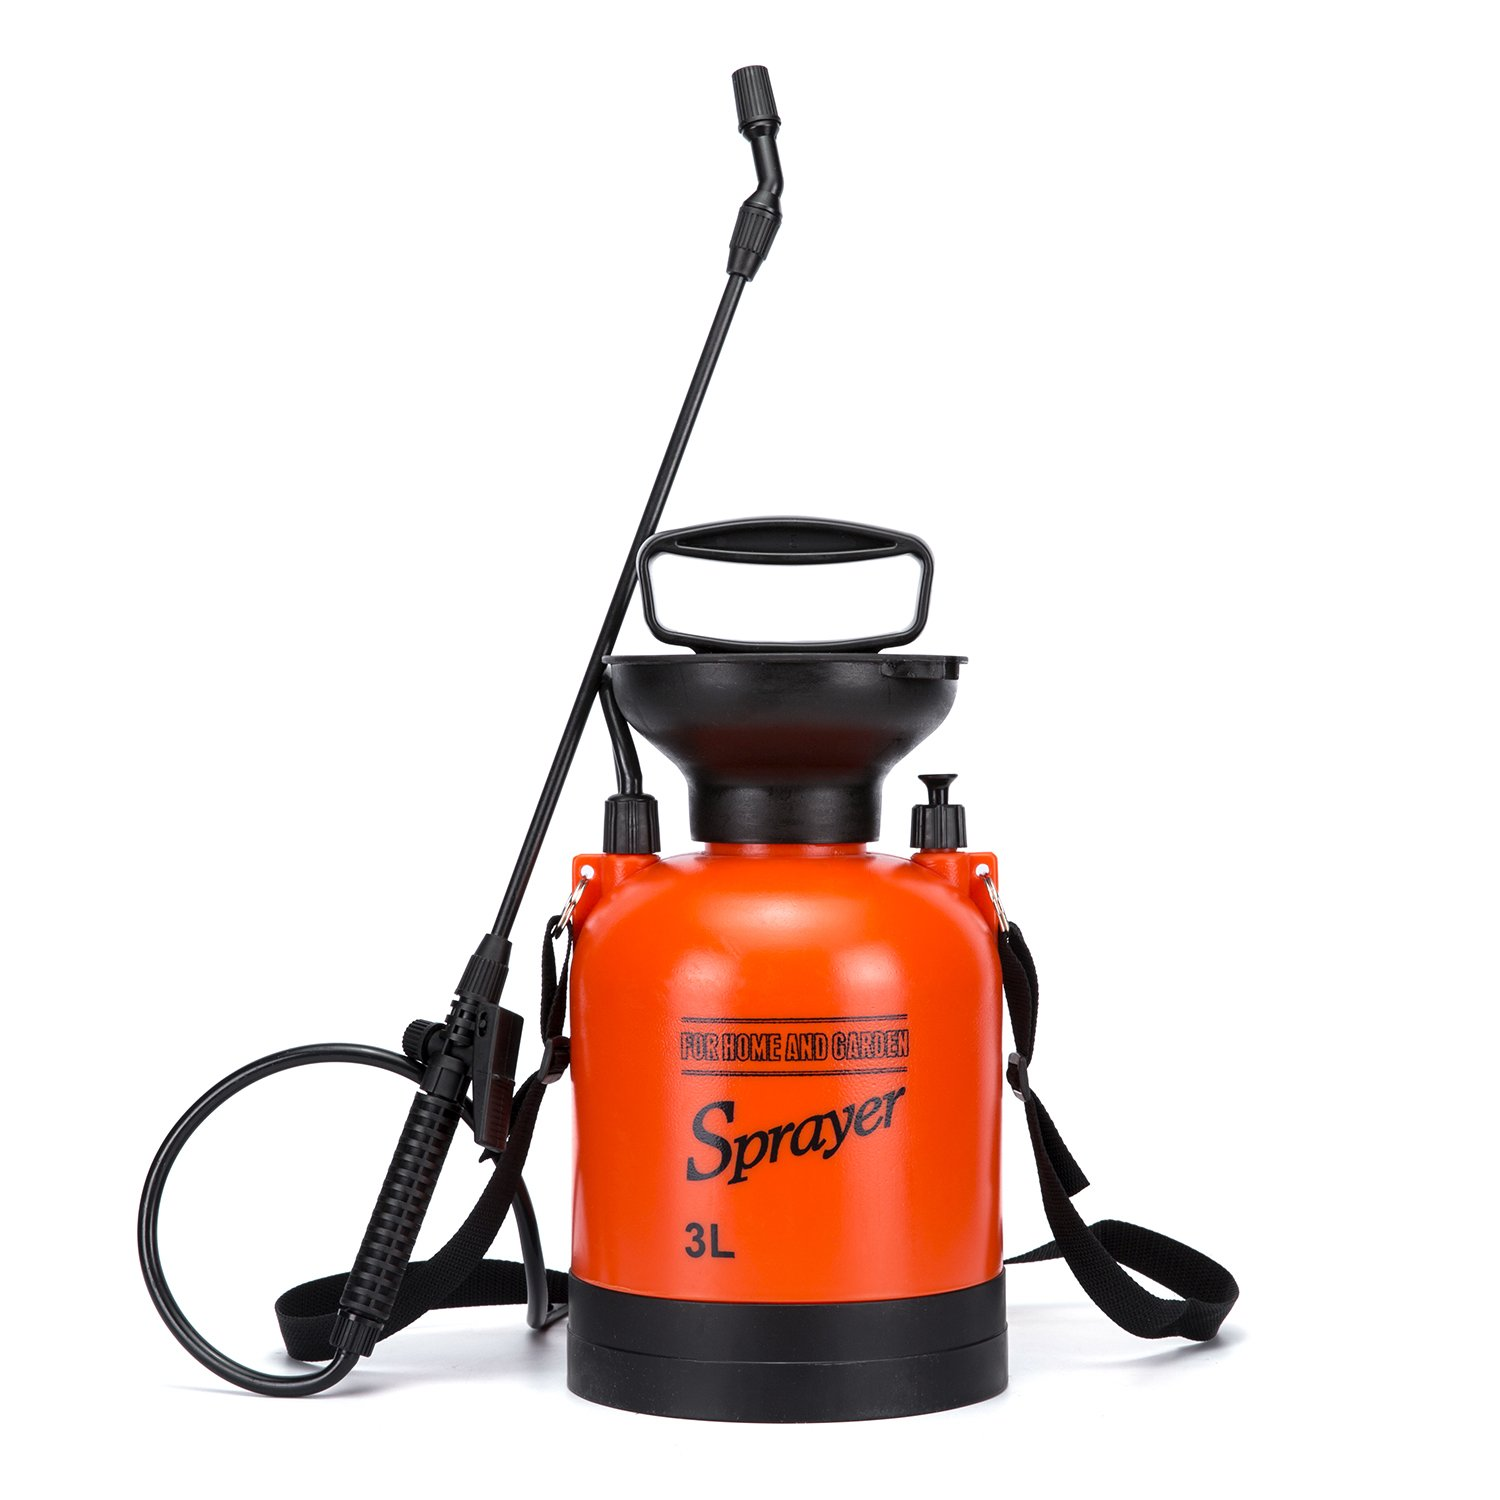 CANCA 3L Super Strong Garden Sprayer-0.8Gal Pump Pressure Liquid Sprayers for Pros Applying Weed Killers, Insecticides, and Fertilizers, Mild Cleaning Solutions and Bleach by CANCA